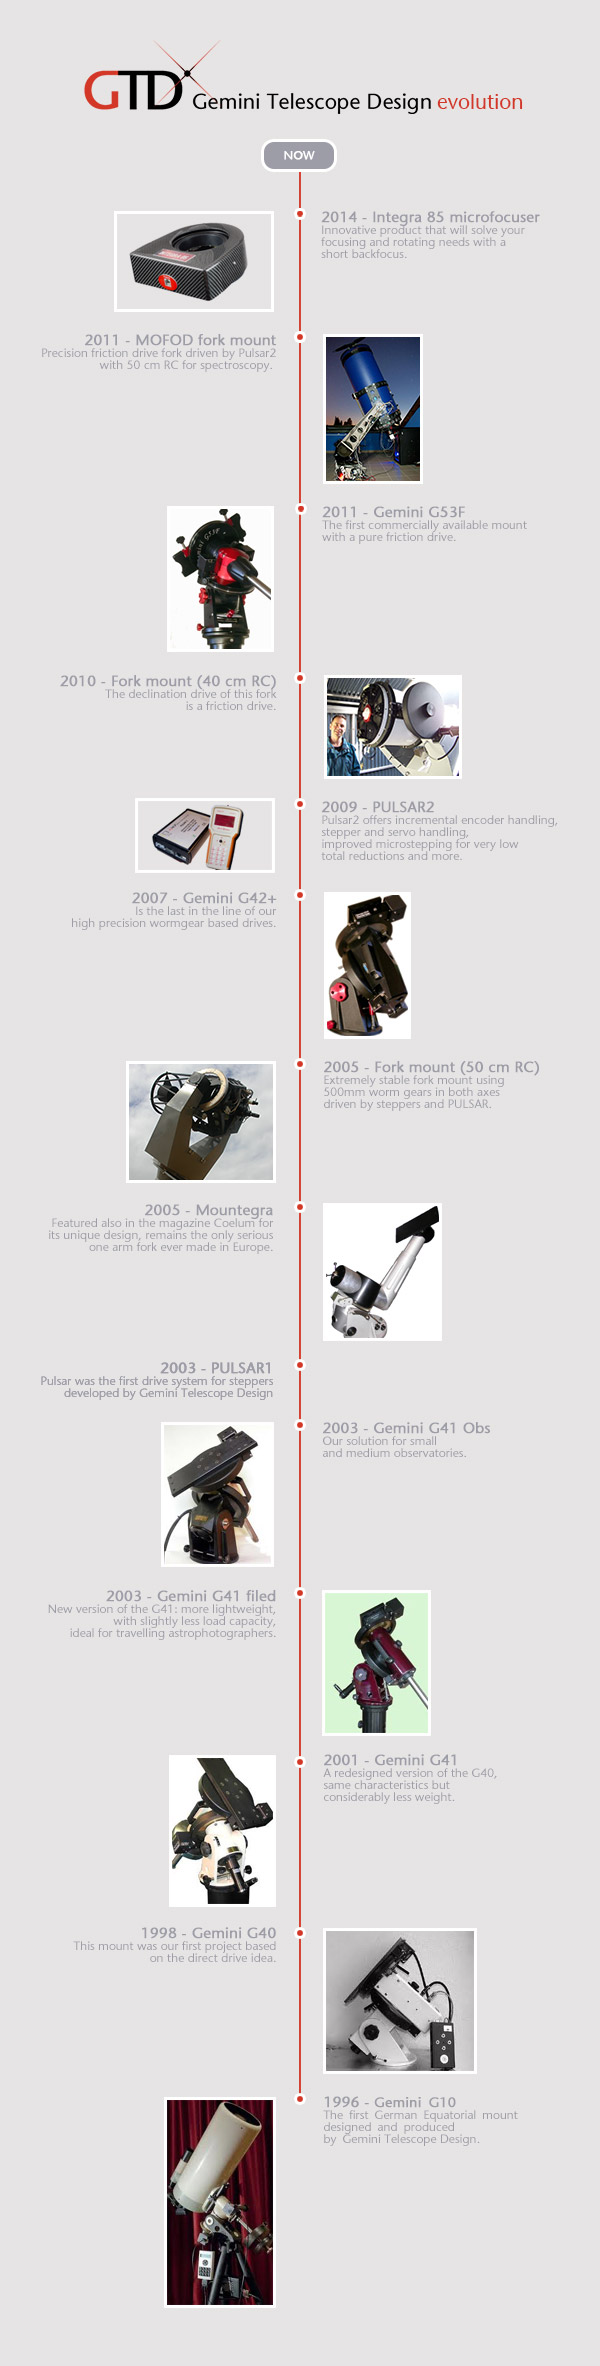 gemini-telescope-design-products-evolution-timeline